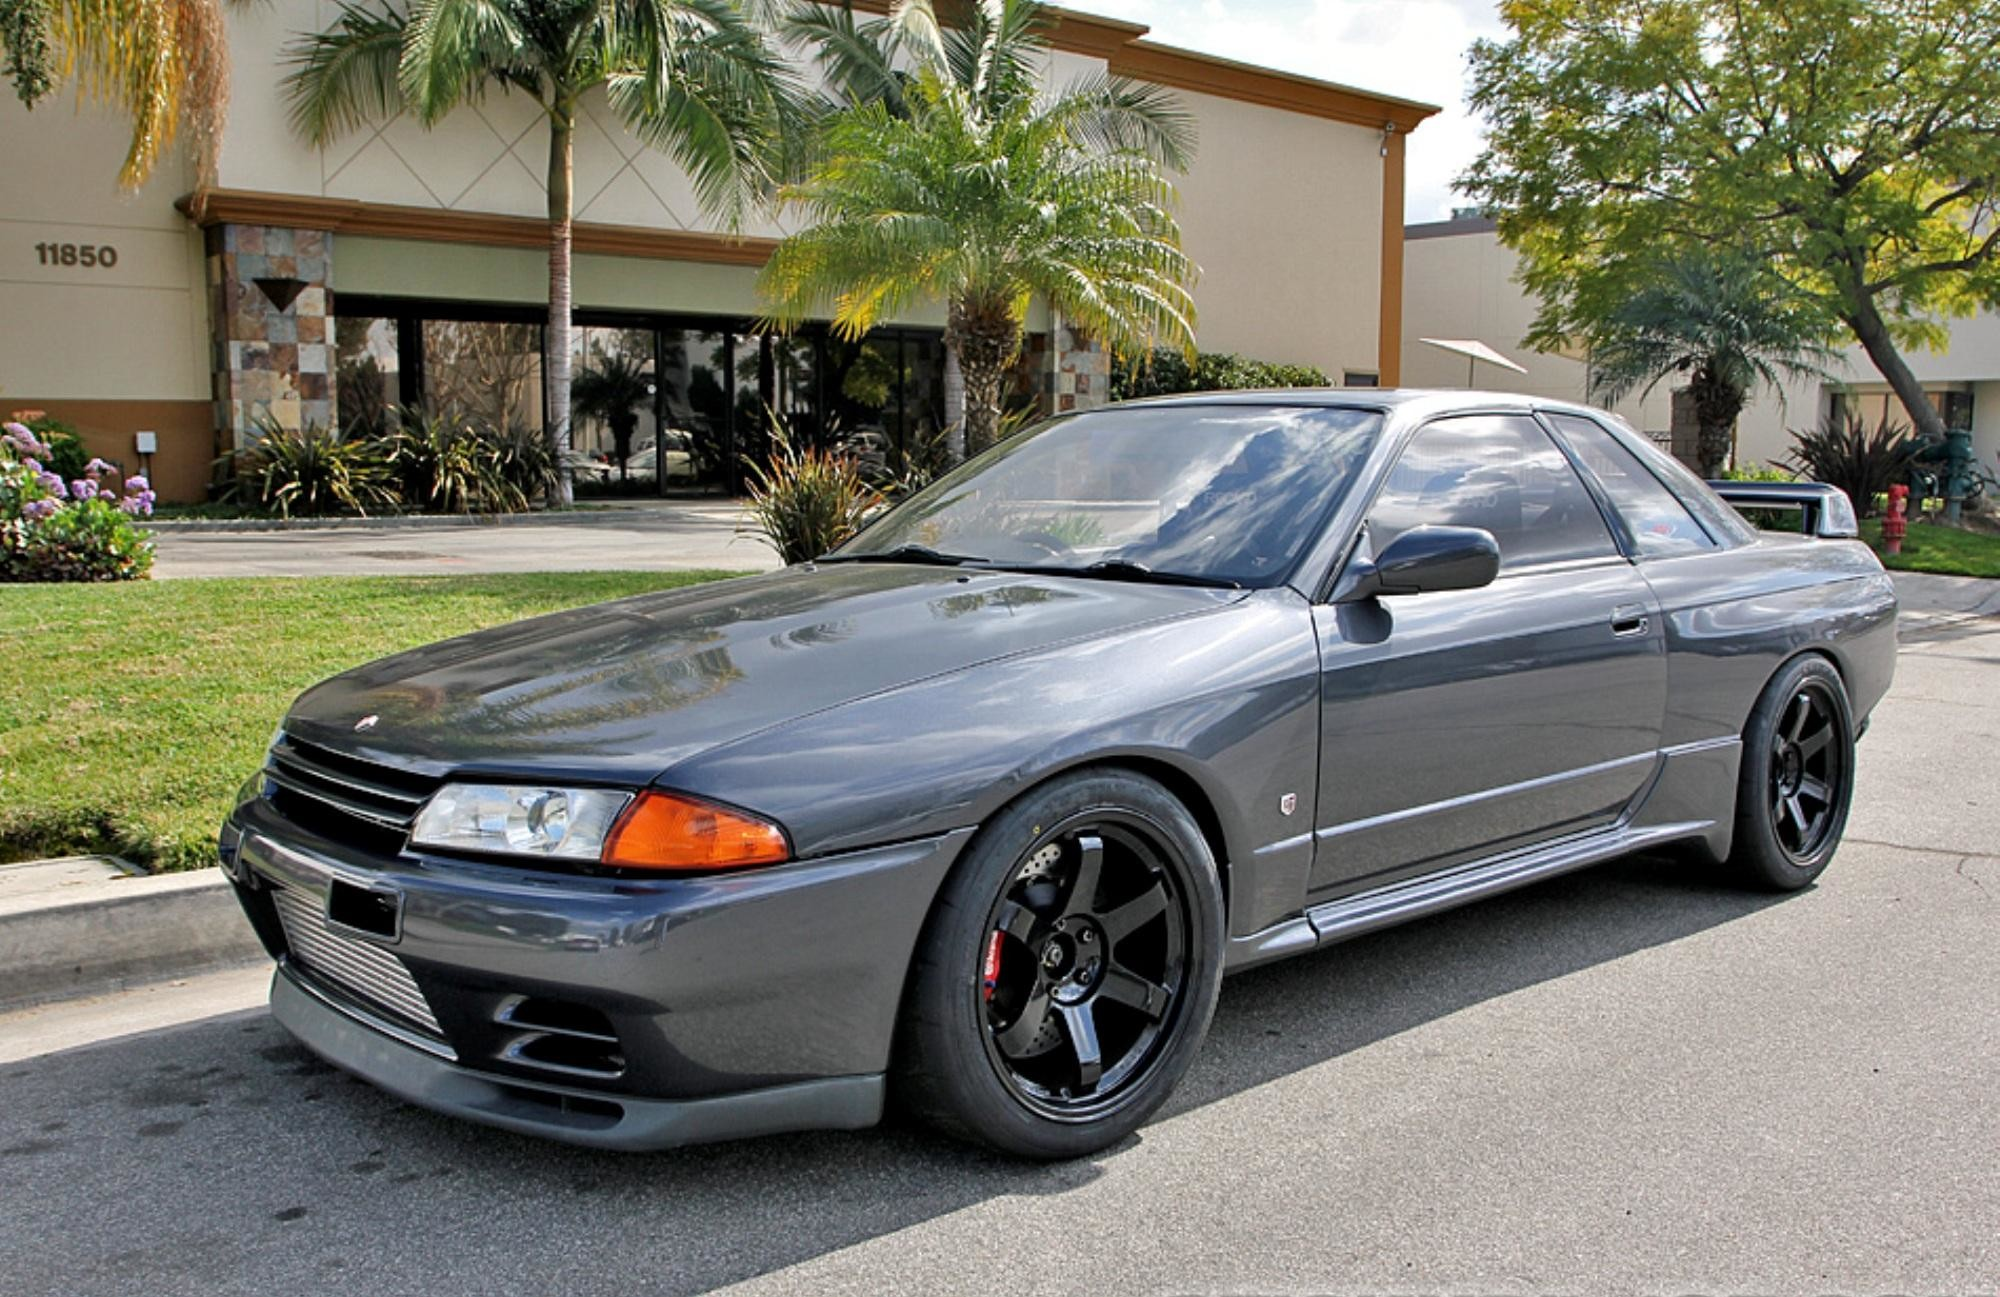 2000x1297 Another one of the top 3 cars I want to have. Nissan Skyline GT-R.